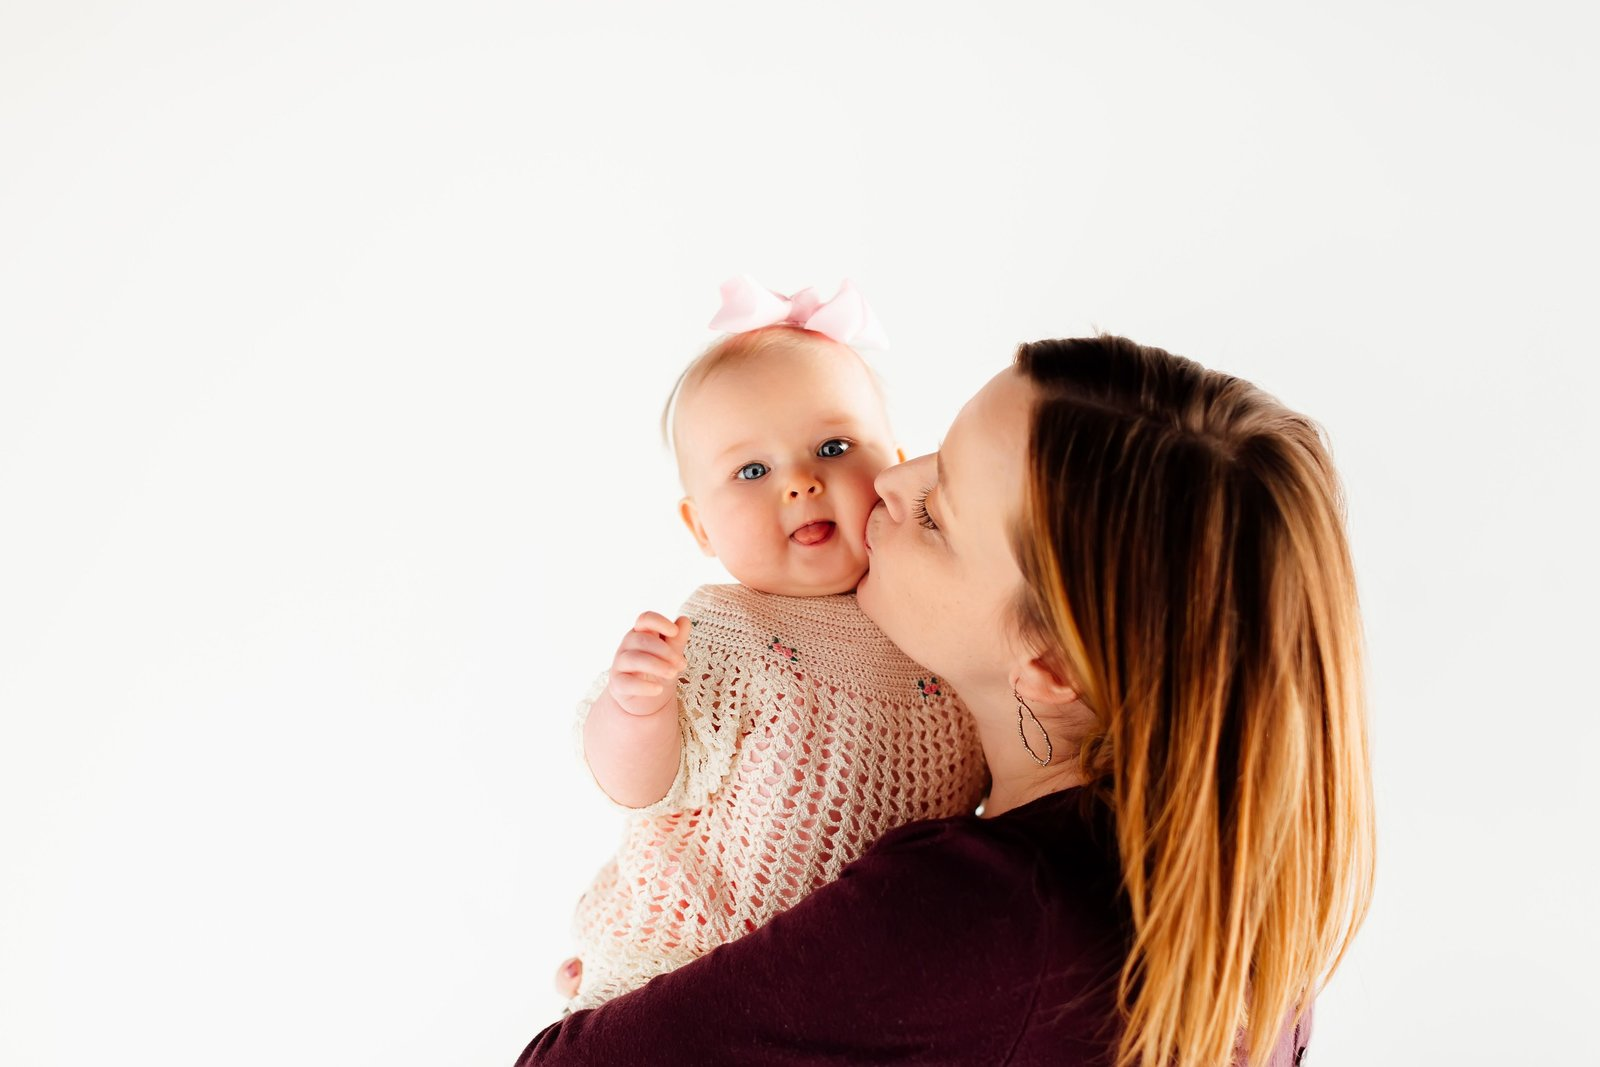 St_Louis_Baby_Photographer_Kelly_Laramore_Photography_74